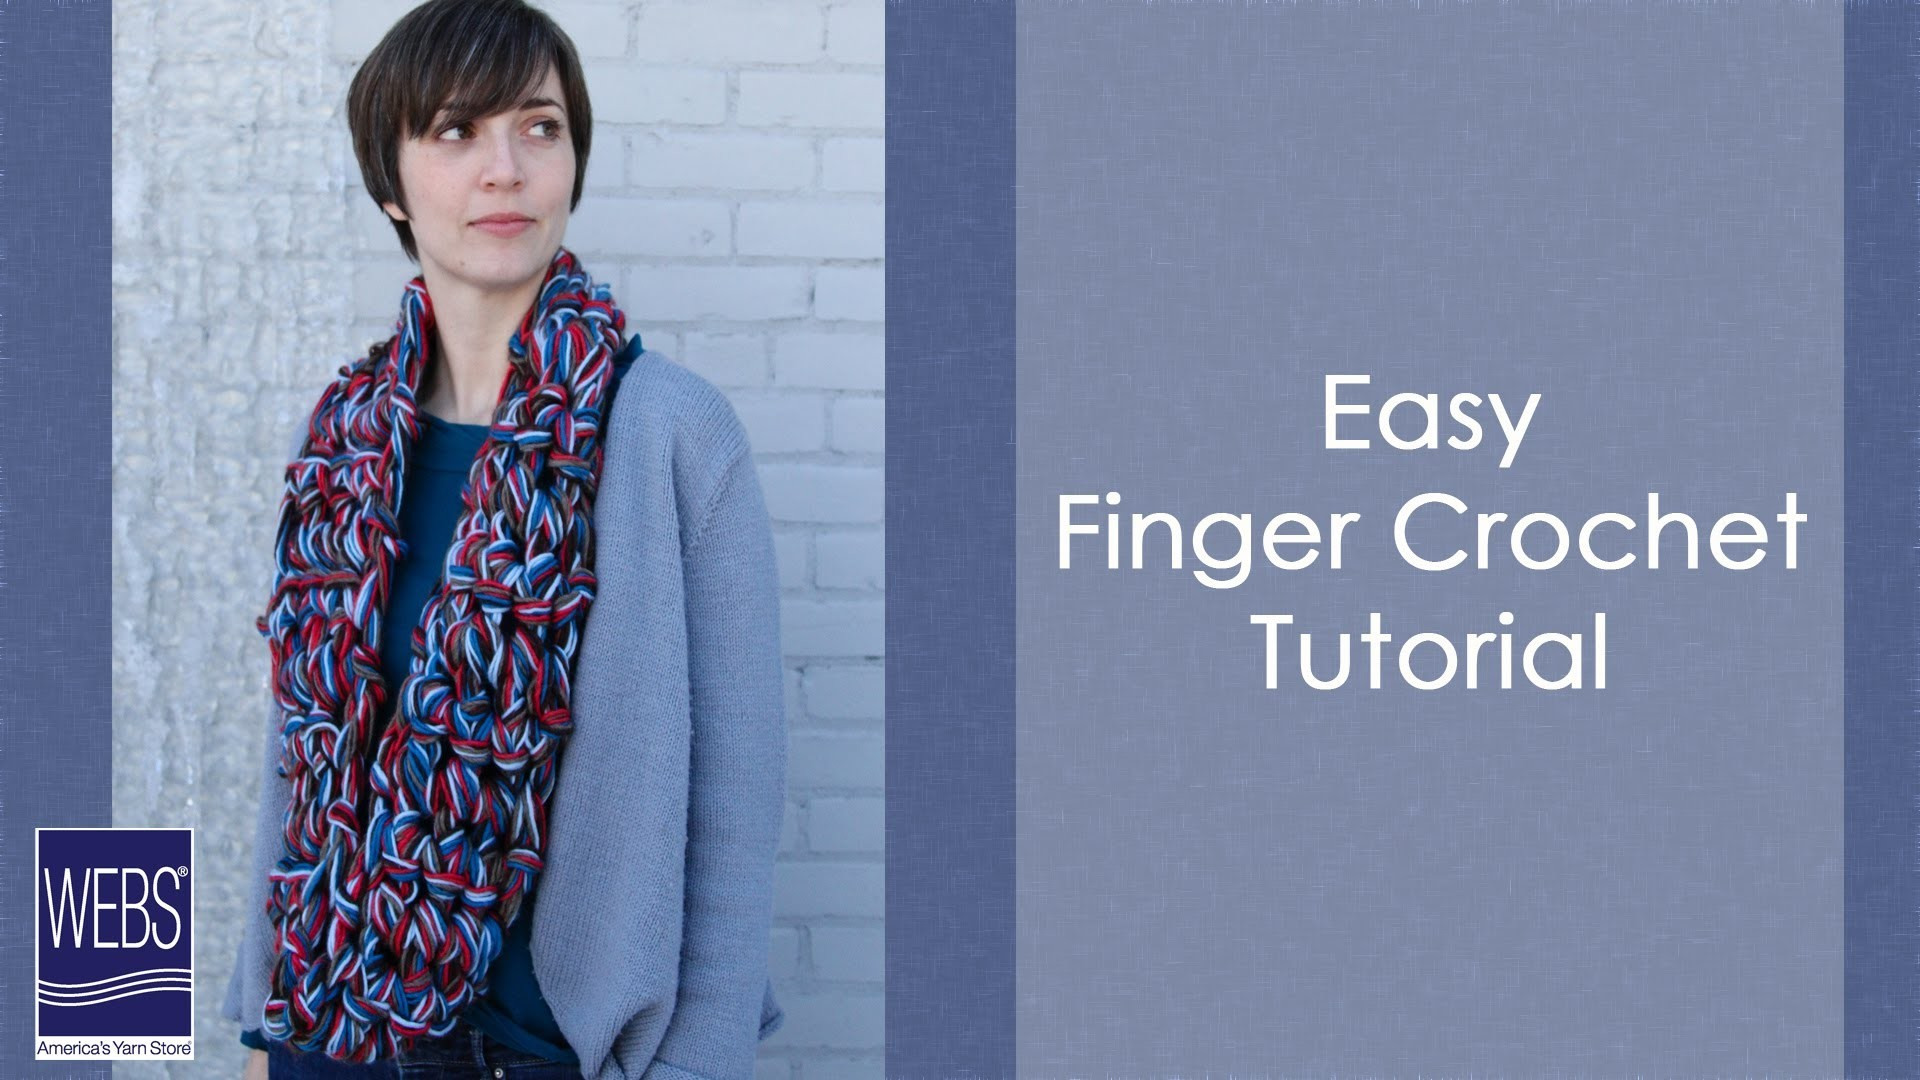 Easy Finger Crochet Tutorial